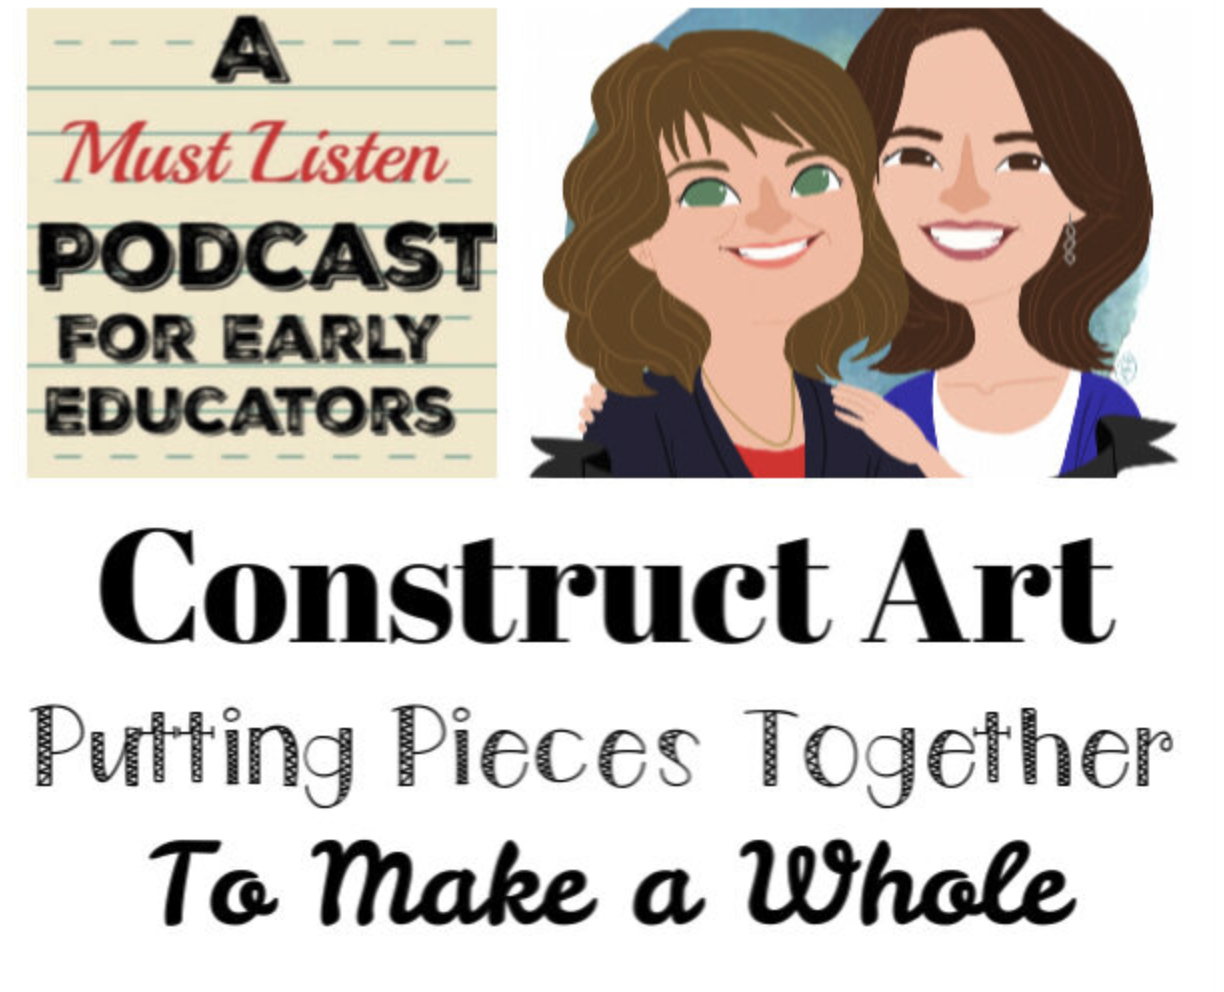 Listen to our podcast to find out more about construct art projects.